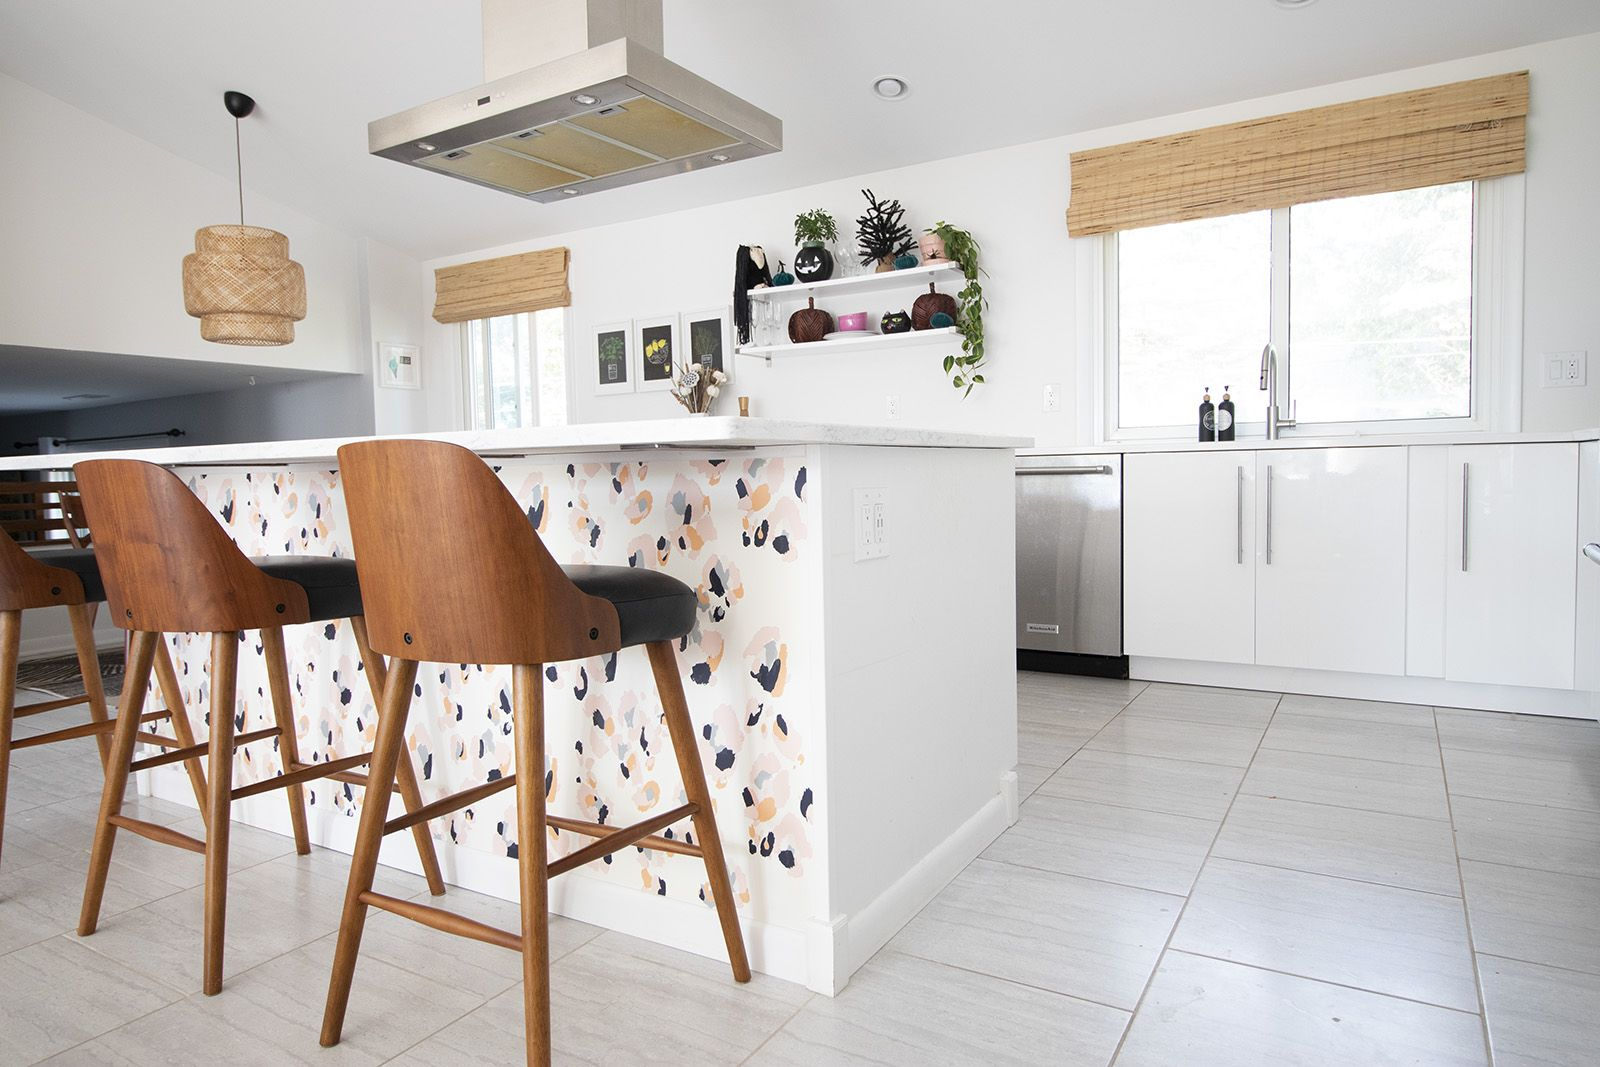 Wallpapering Our Kitchen Island Wallpaper Kitchen Island Kitchen Wallpaper Island Wallpaper